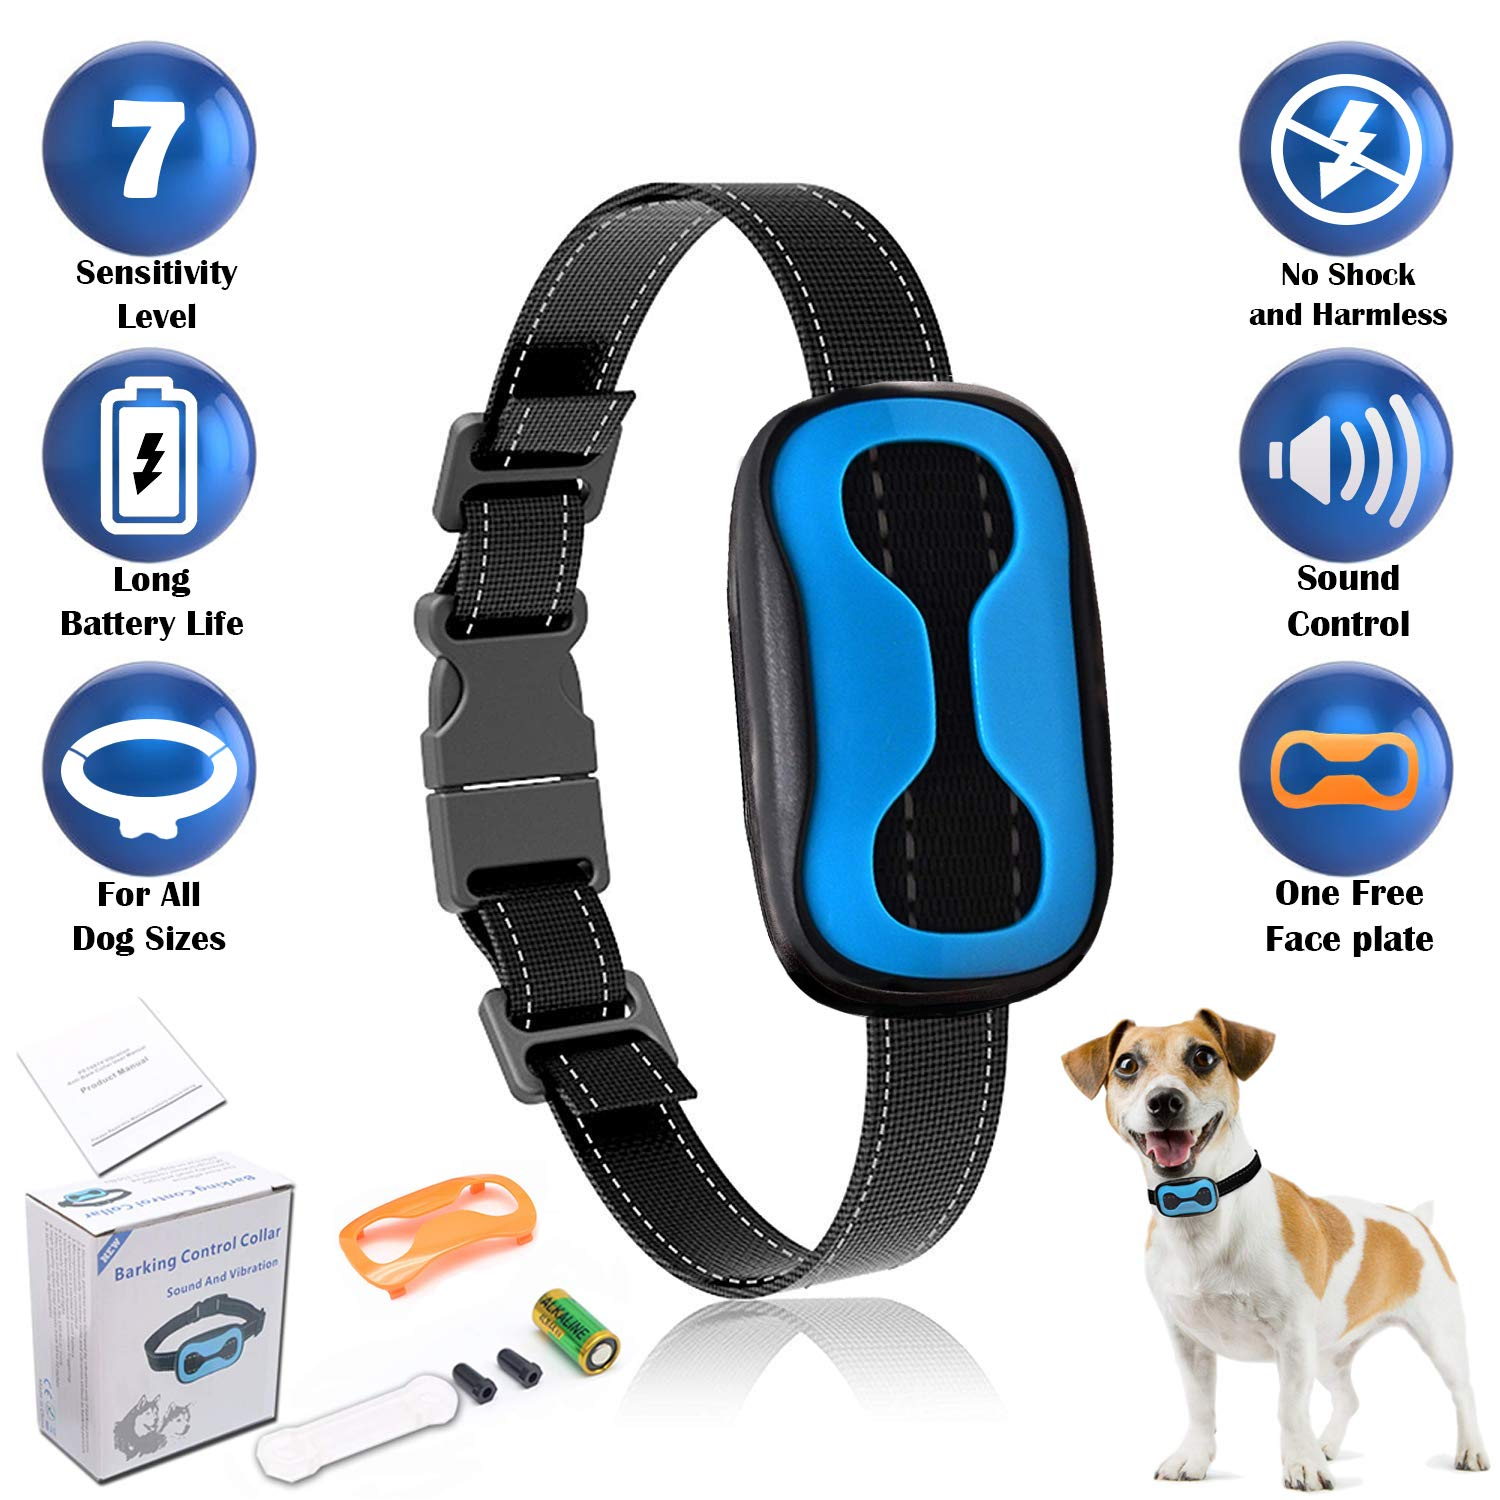 FR Anti Bark Collar with Vibration Dog Collar for Small Medium Large Dogs, Training Collar with 7 Adjustable Levels, Anti Barking Collar for Dogs